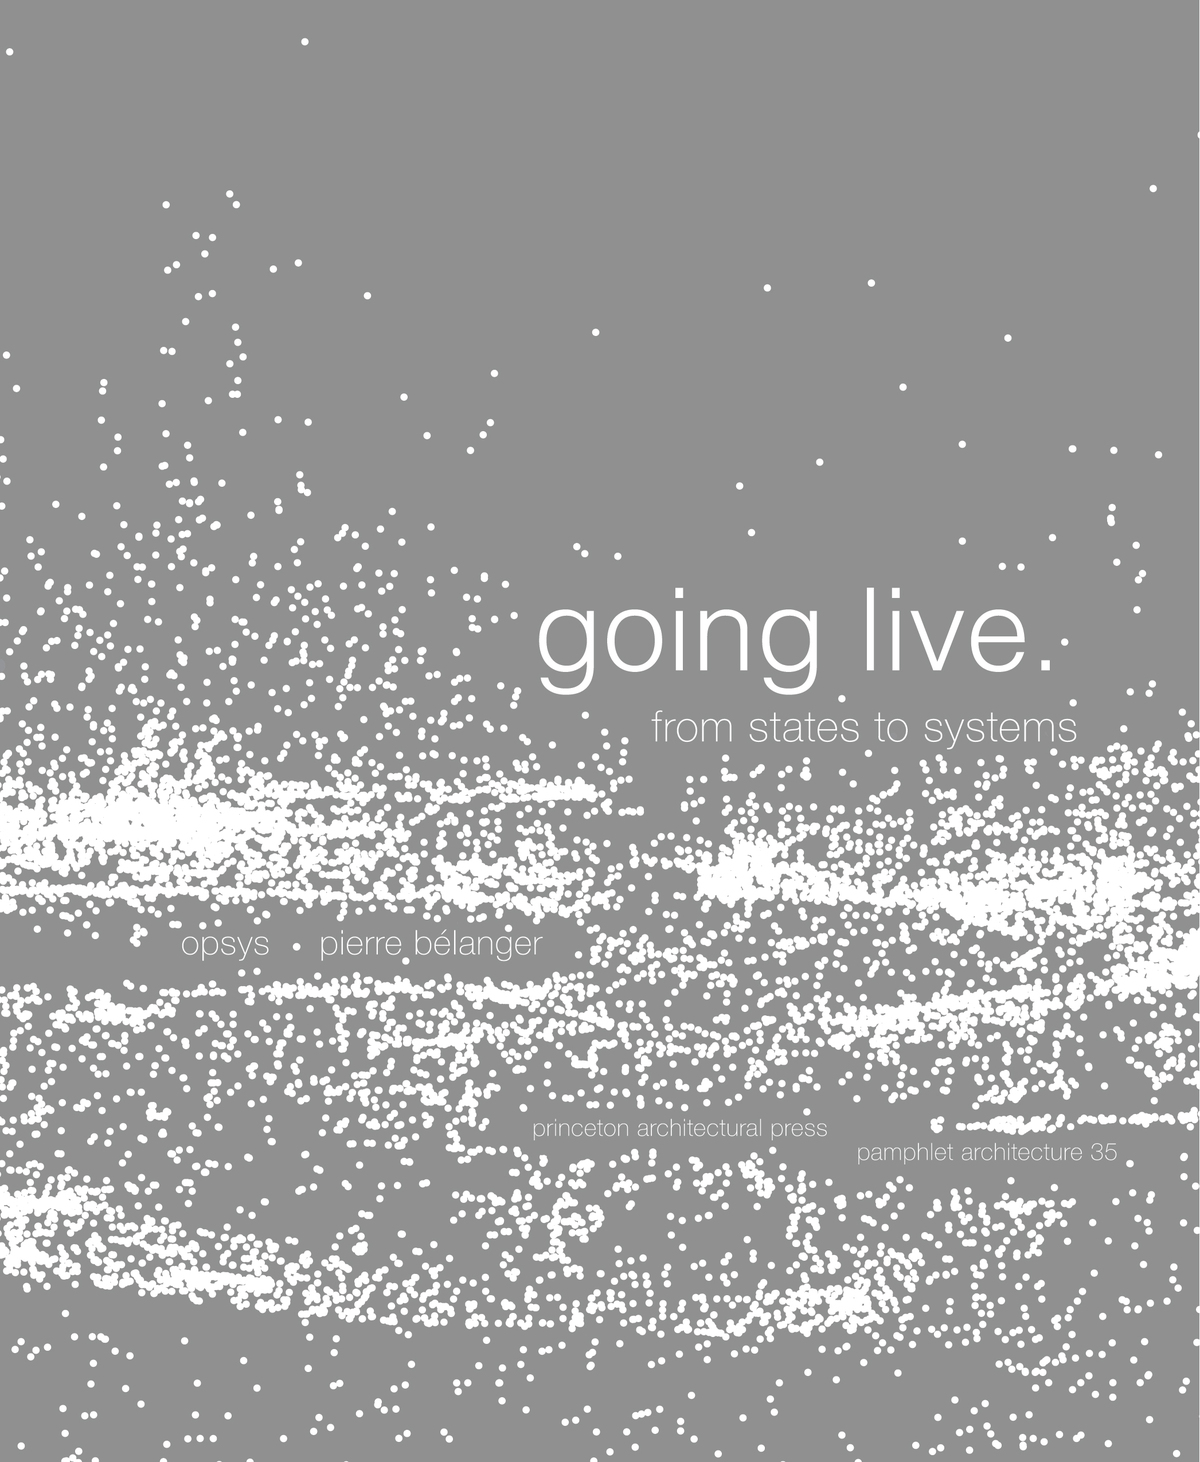 The cover of Pamphlet 35: Going Live: From States to Systems